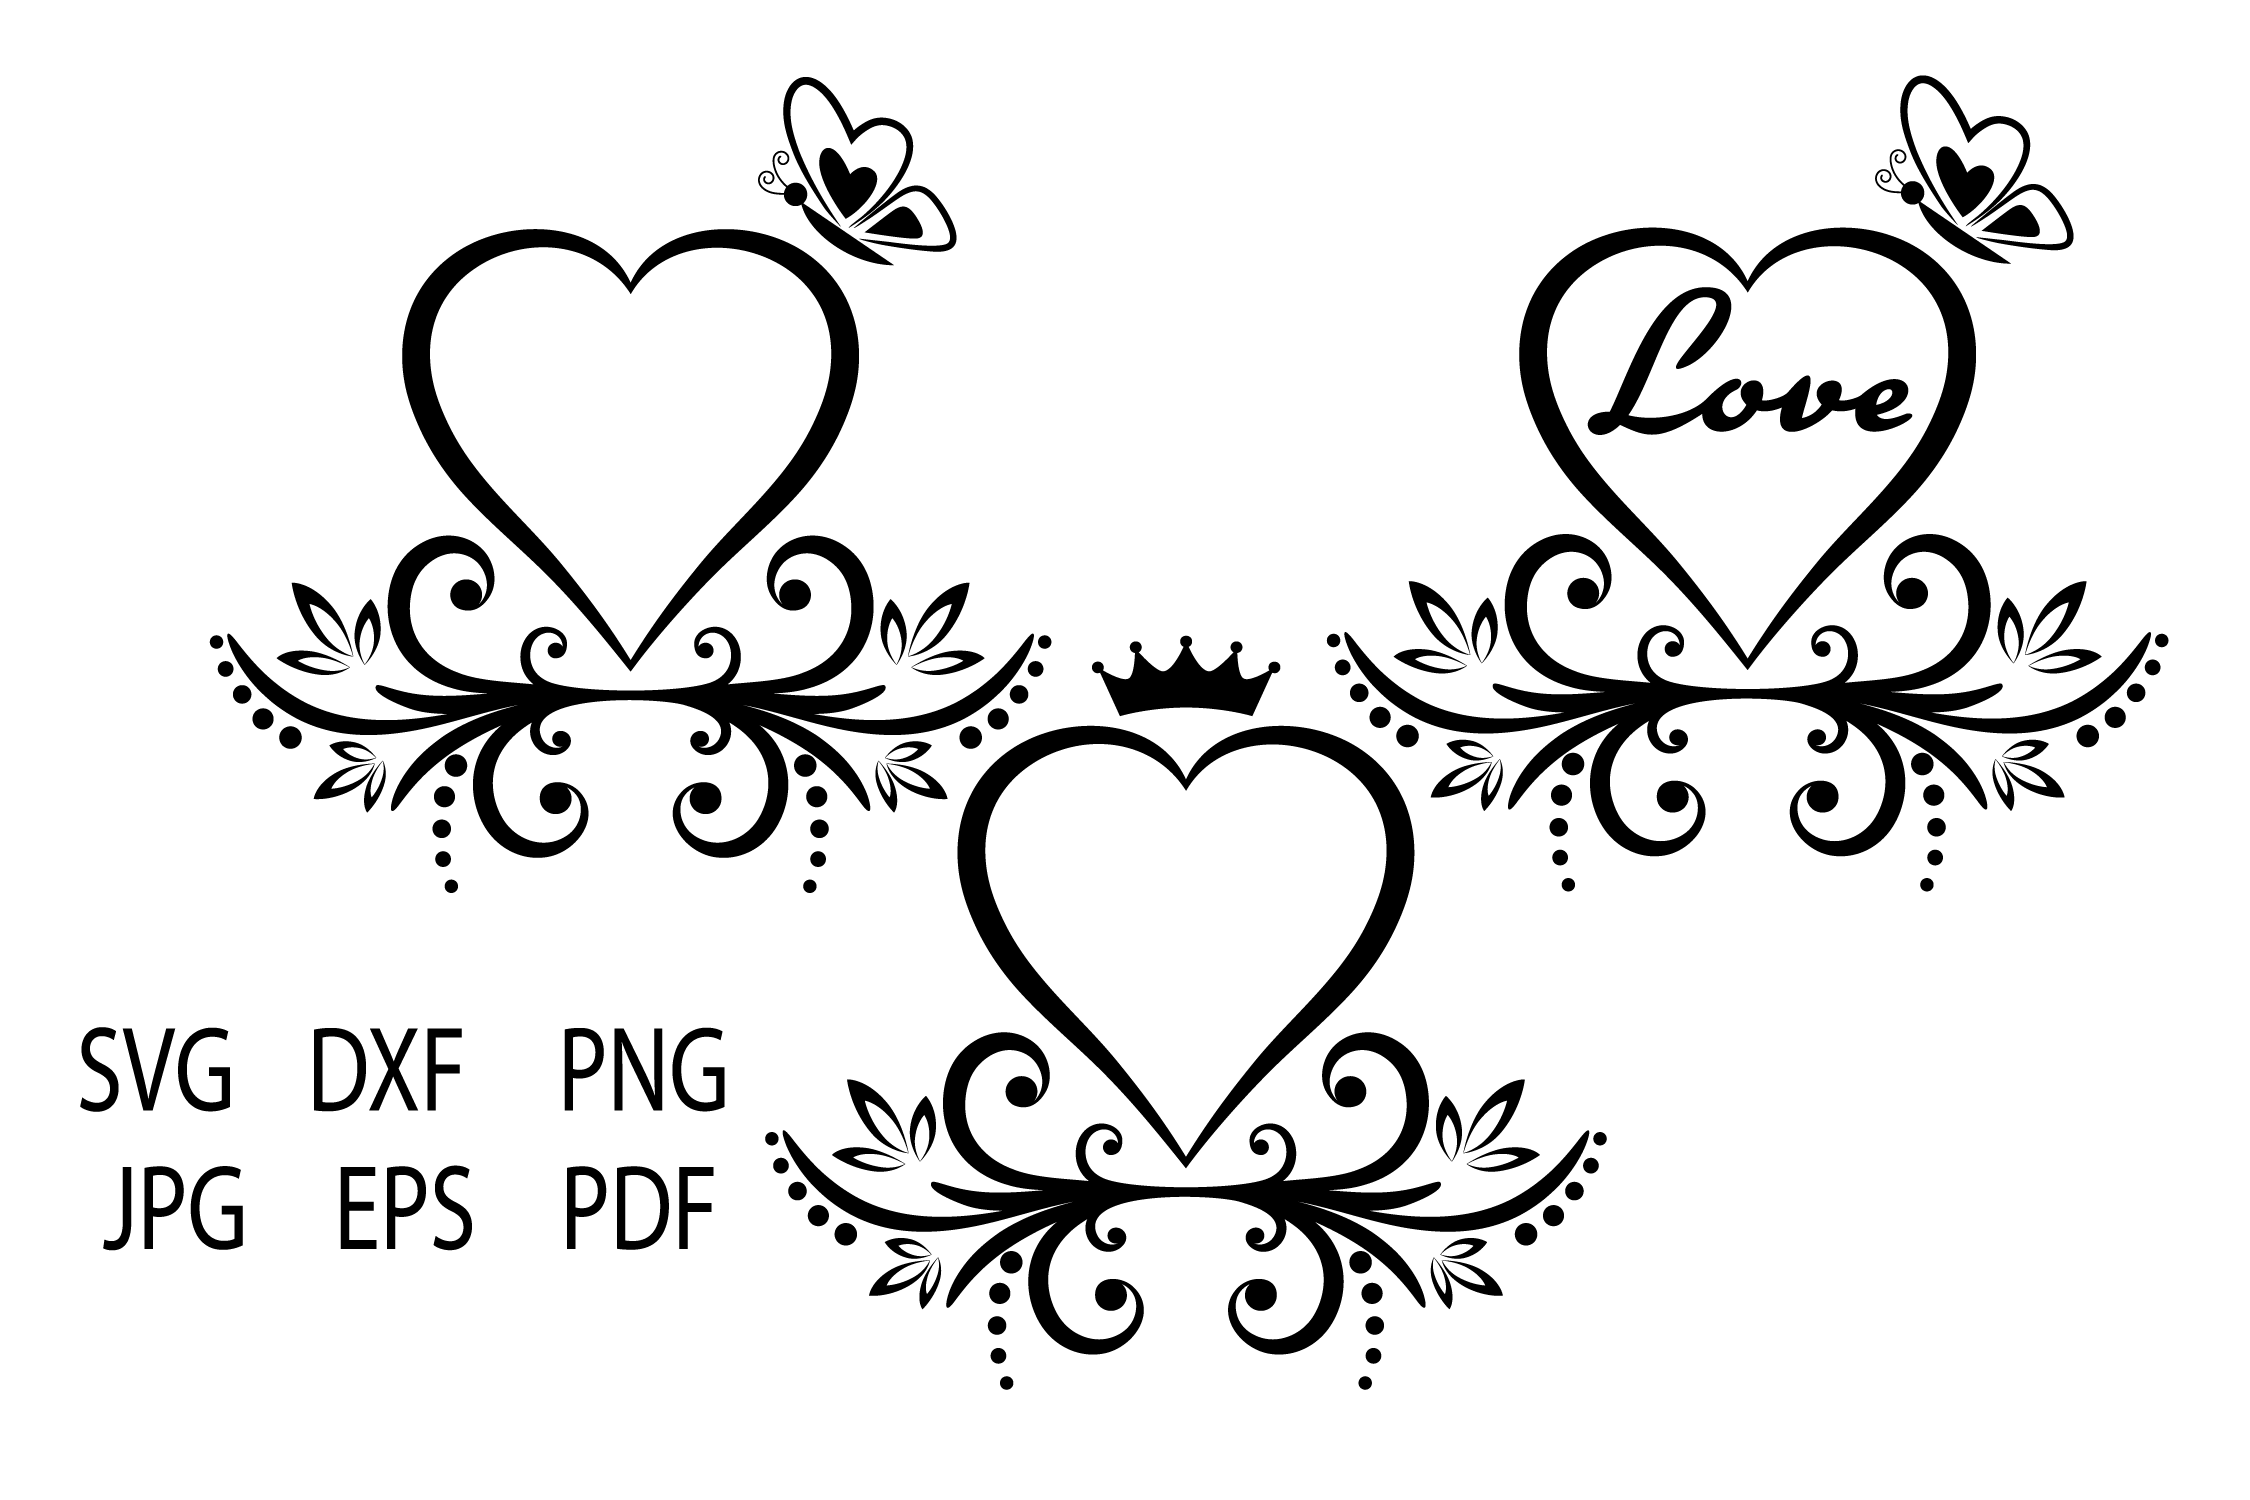 Heart SVG, Heart Cut Files, Love, Floral Heart SVG example image 2